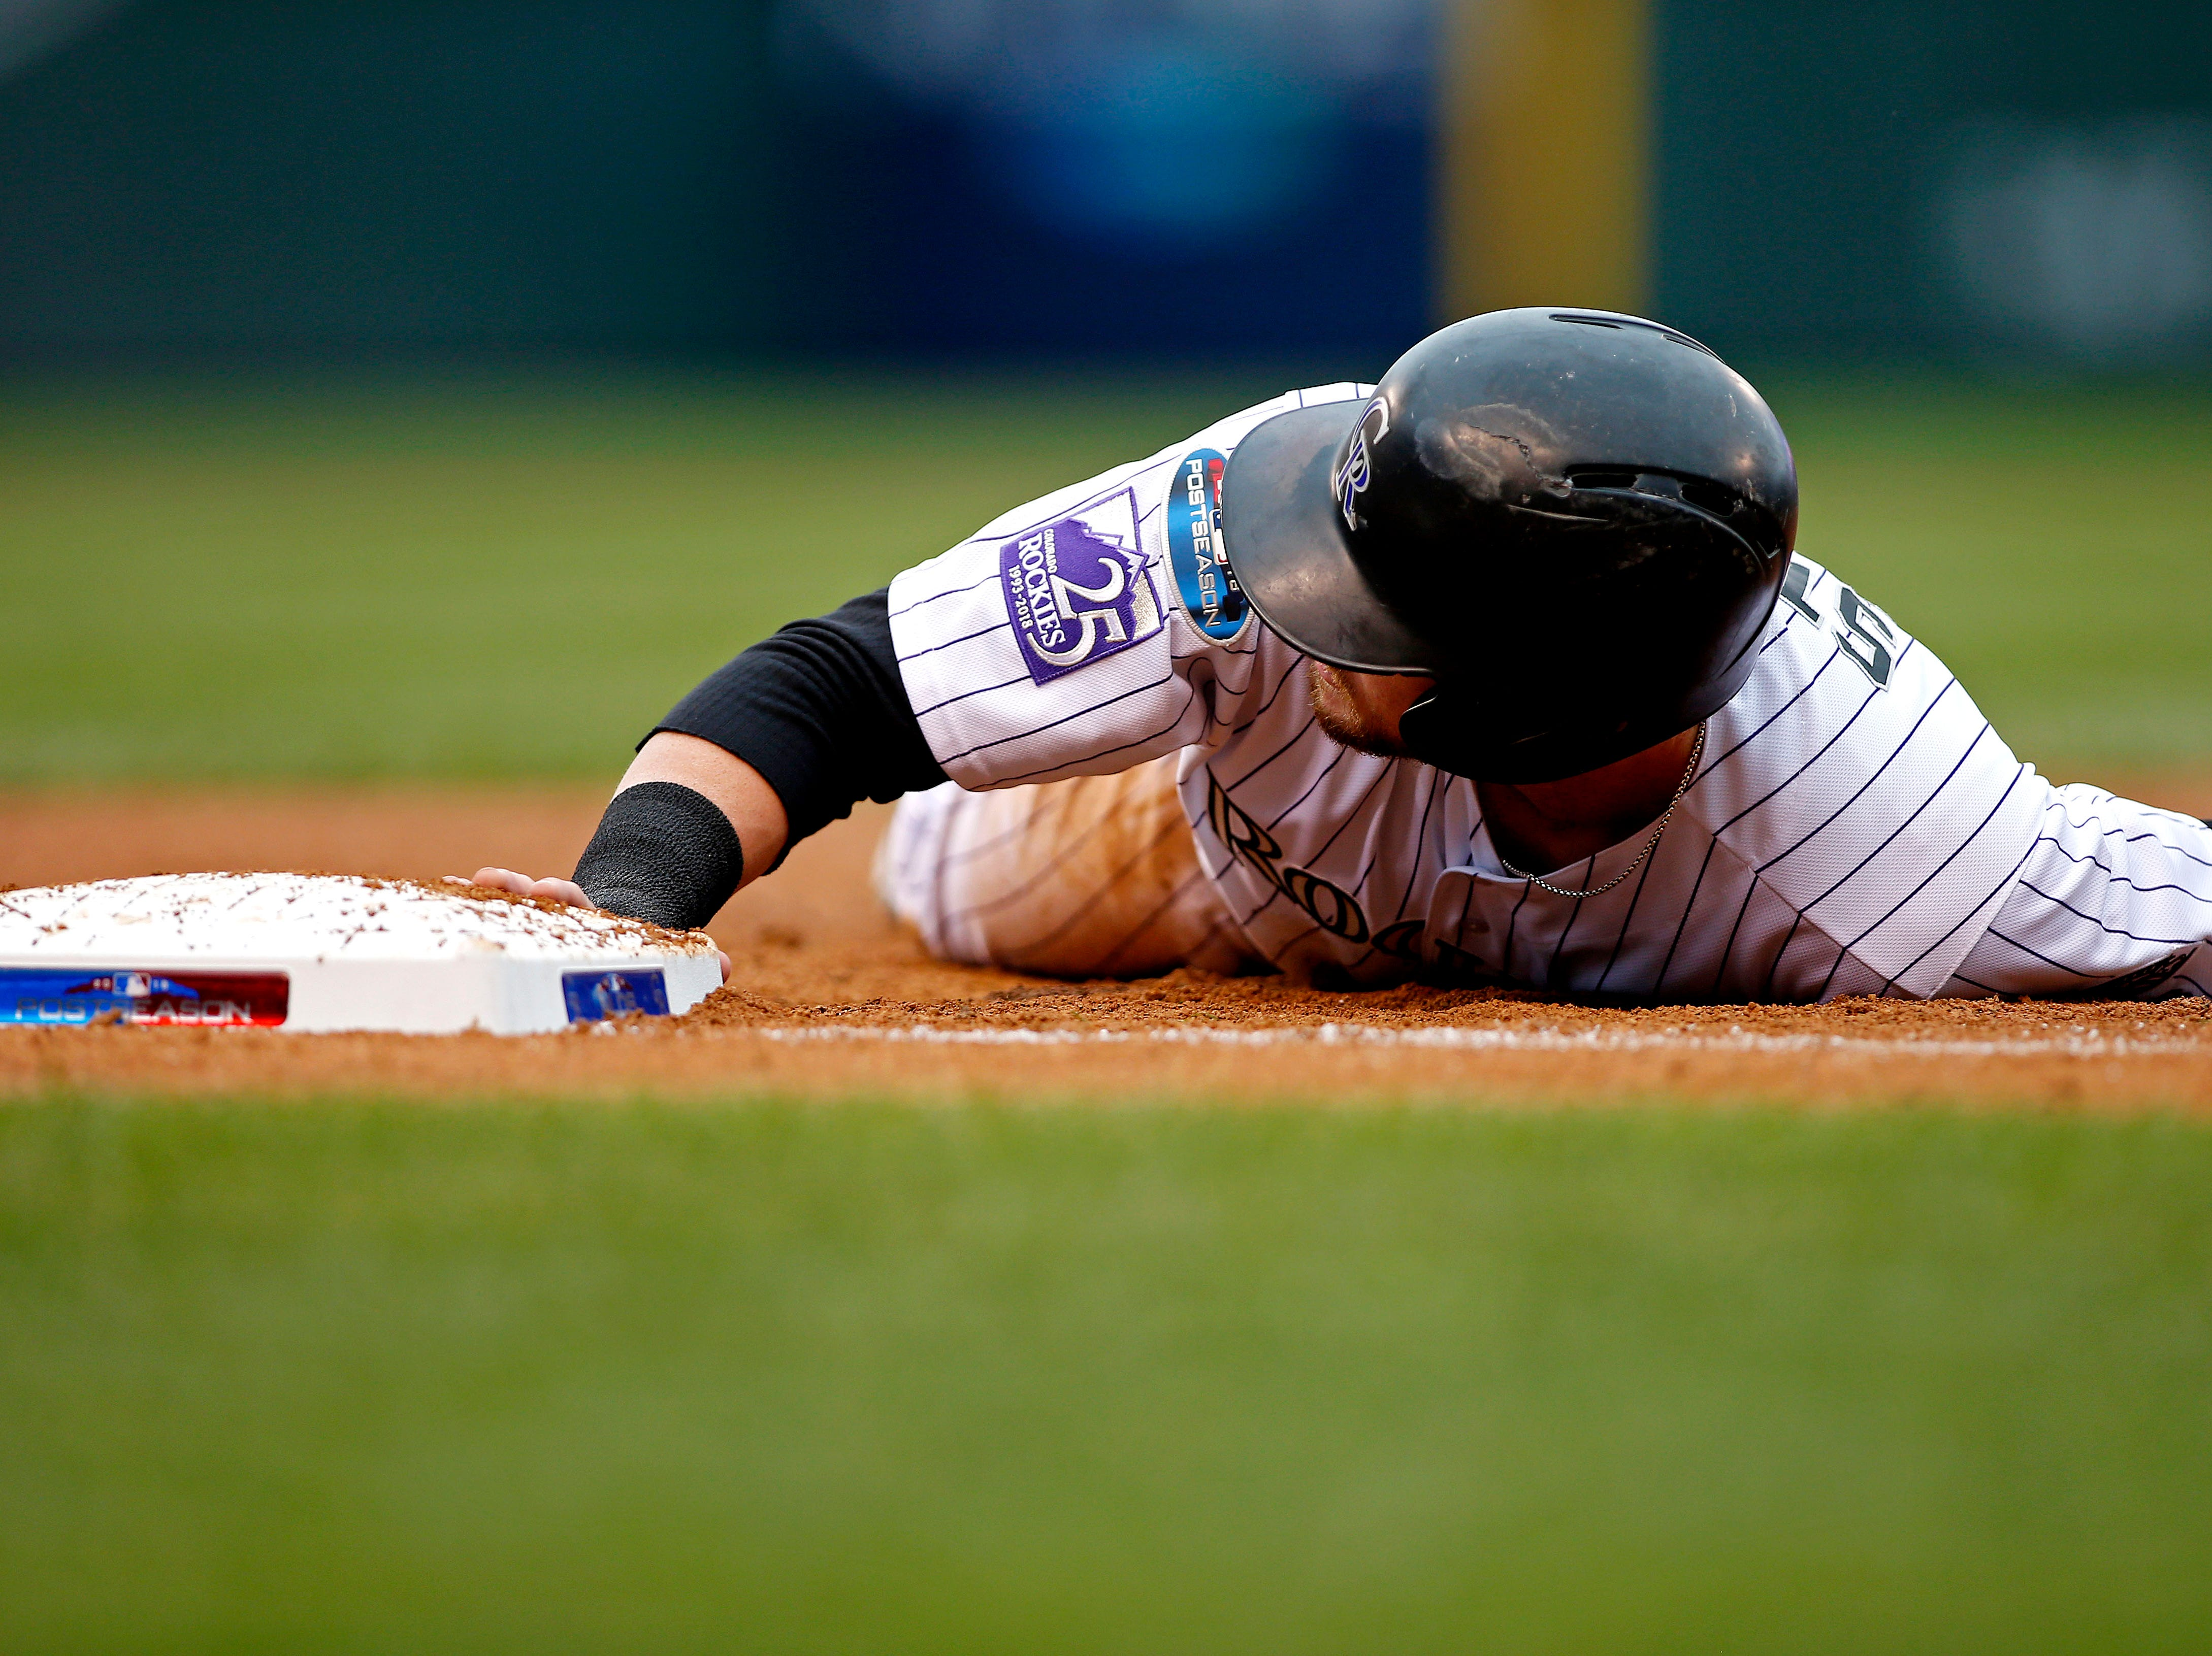 NLDS Game 3: Rockies shortstop Trevor Story dives back to first base in the second inning.